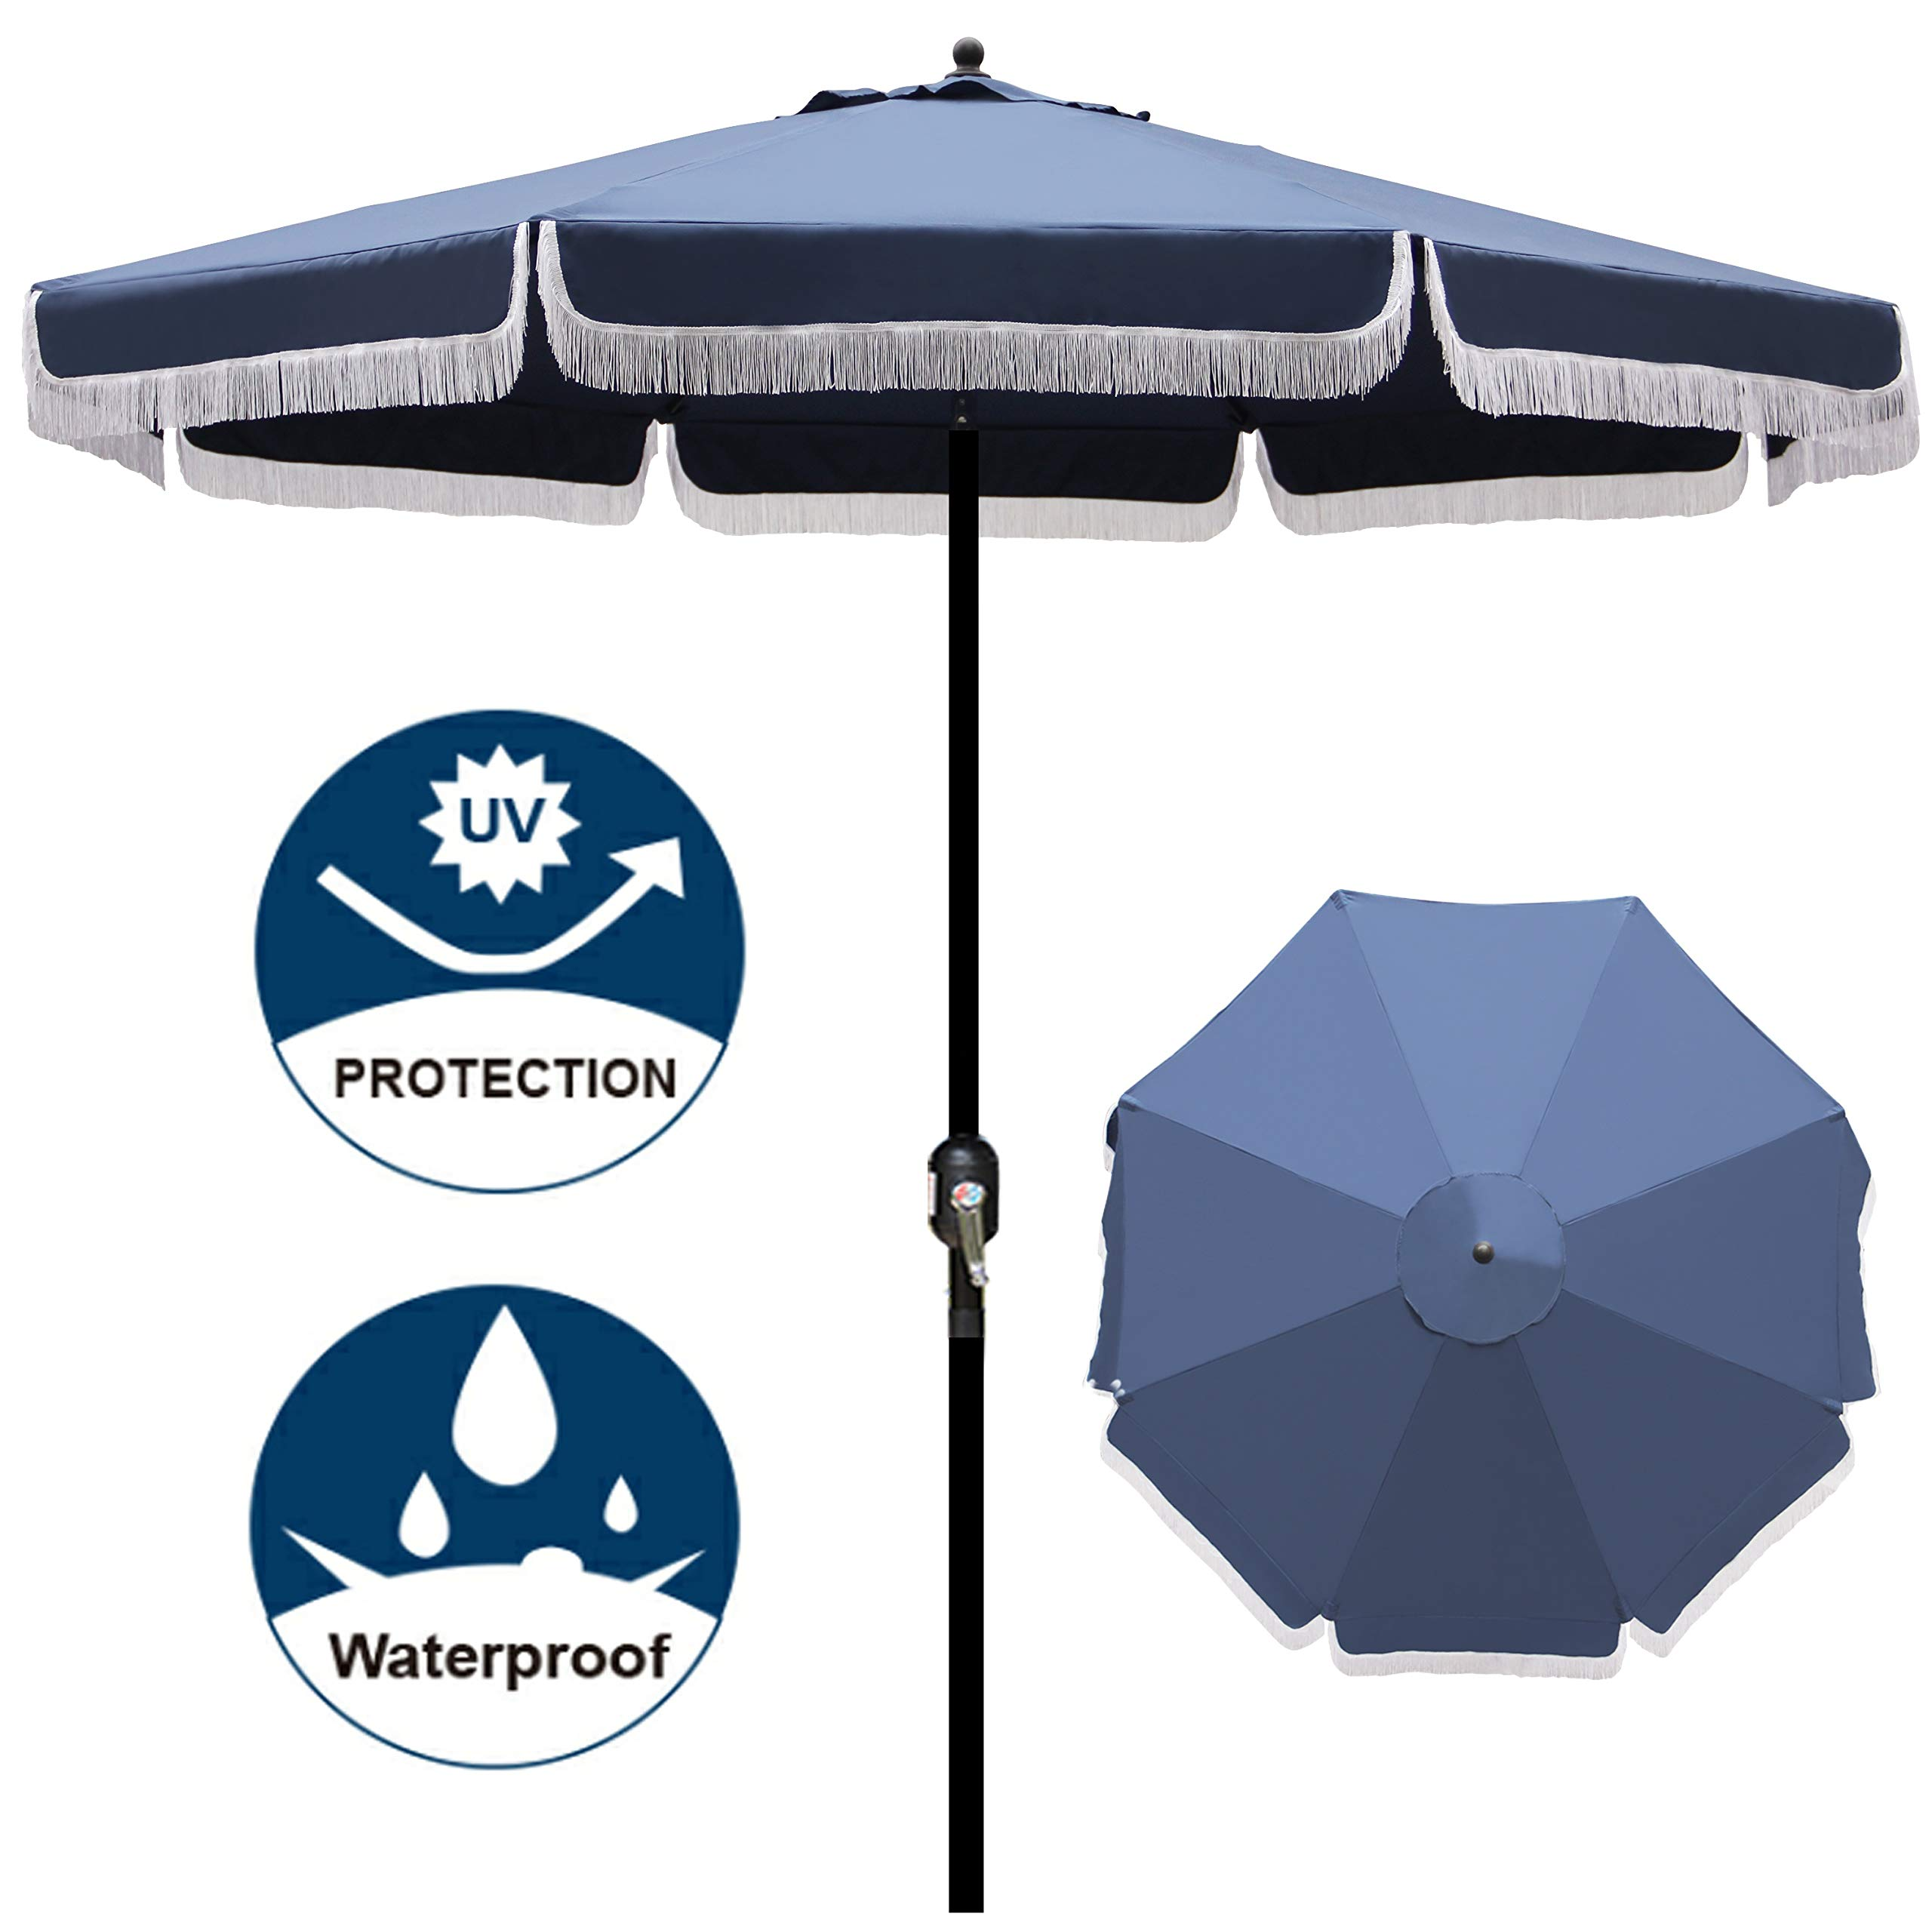 Blissun 9' Outdoor Patio Umbrella with Fringe, Aluminum Manual Push Button Tilt and Crank Garden Parasol by Blissun